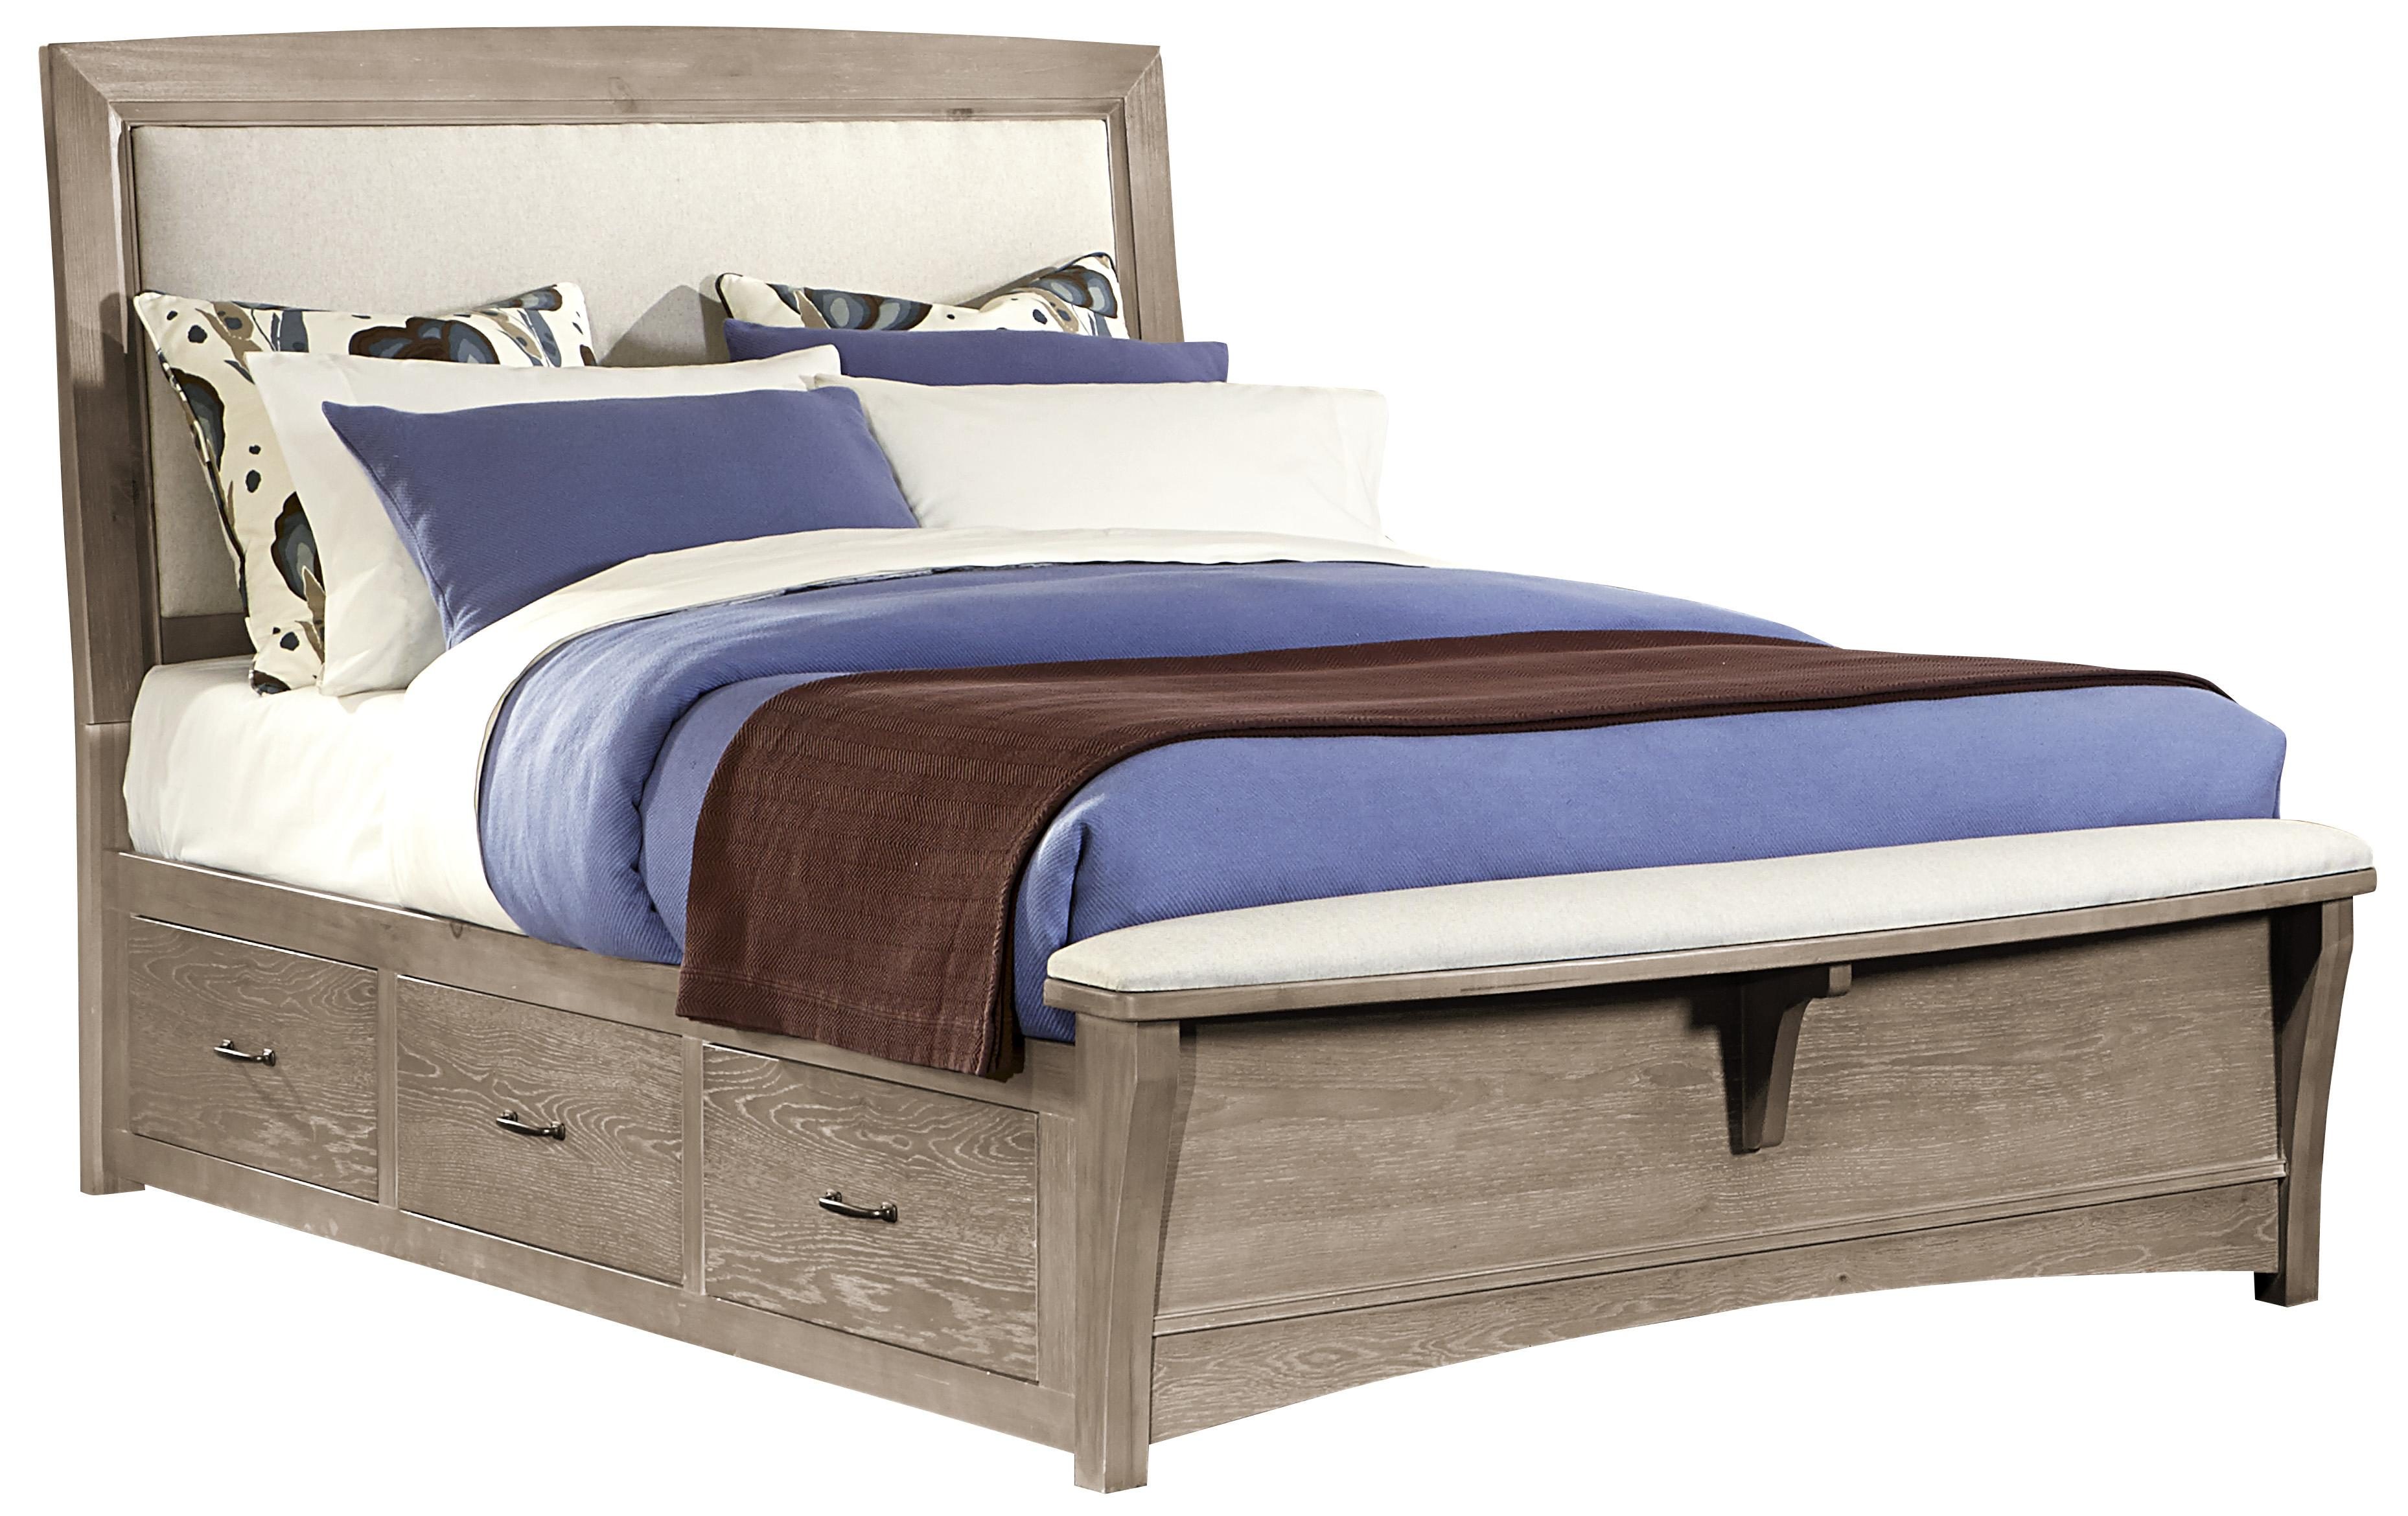 Vaughan Bassett Transitions King Upholstered Bed with 1 Side Storage - Item Number: BB61-669+966+082B+082C+082D+666T